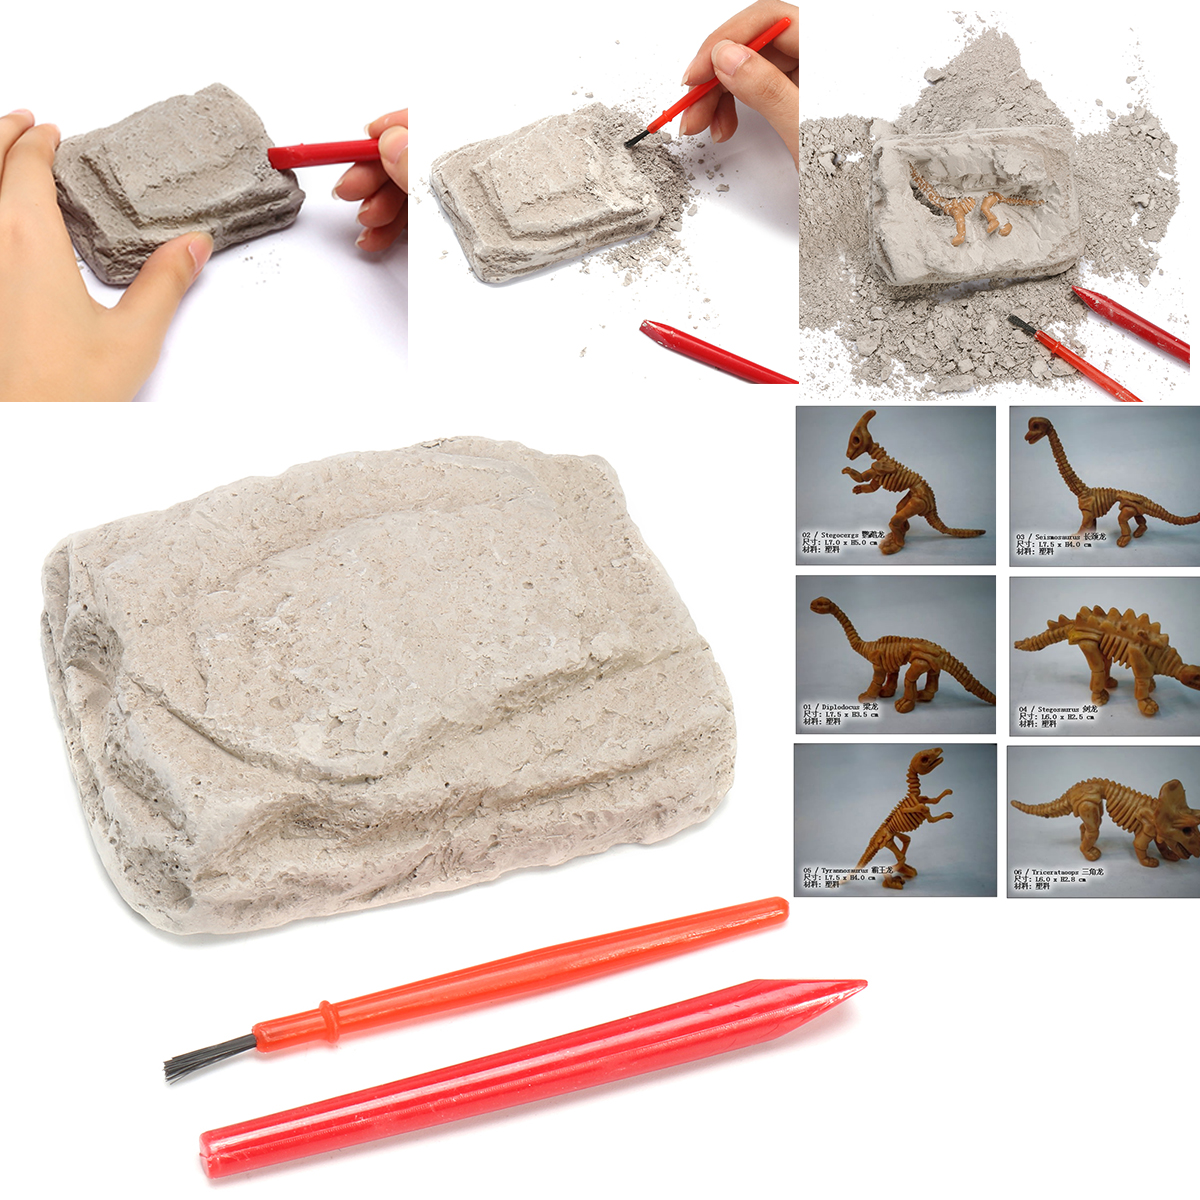 Dinosaur Excavation Kit - Dig Your Own History Skeleton Model Kids Science Learning Playsets Toy Gift